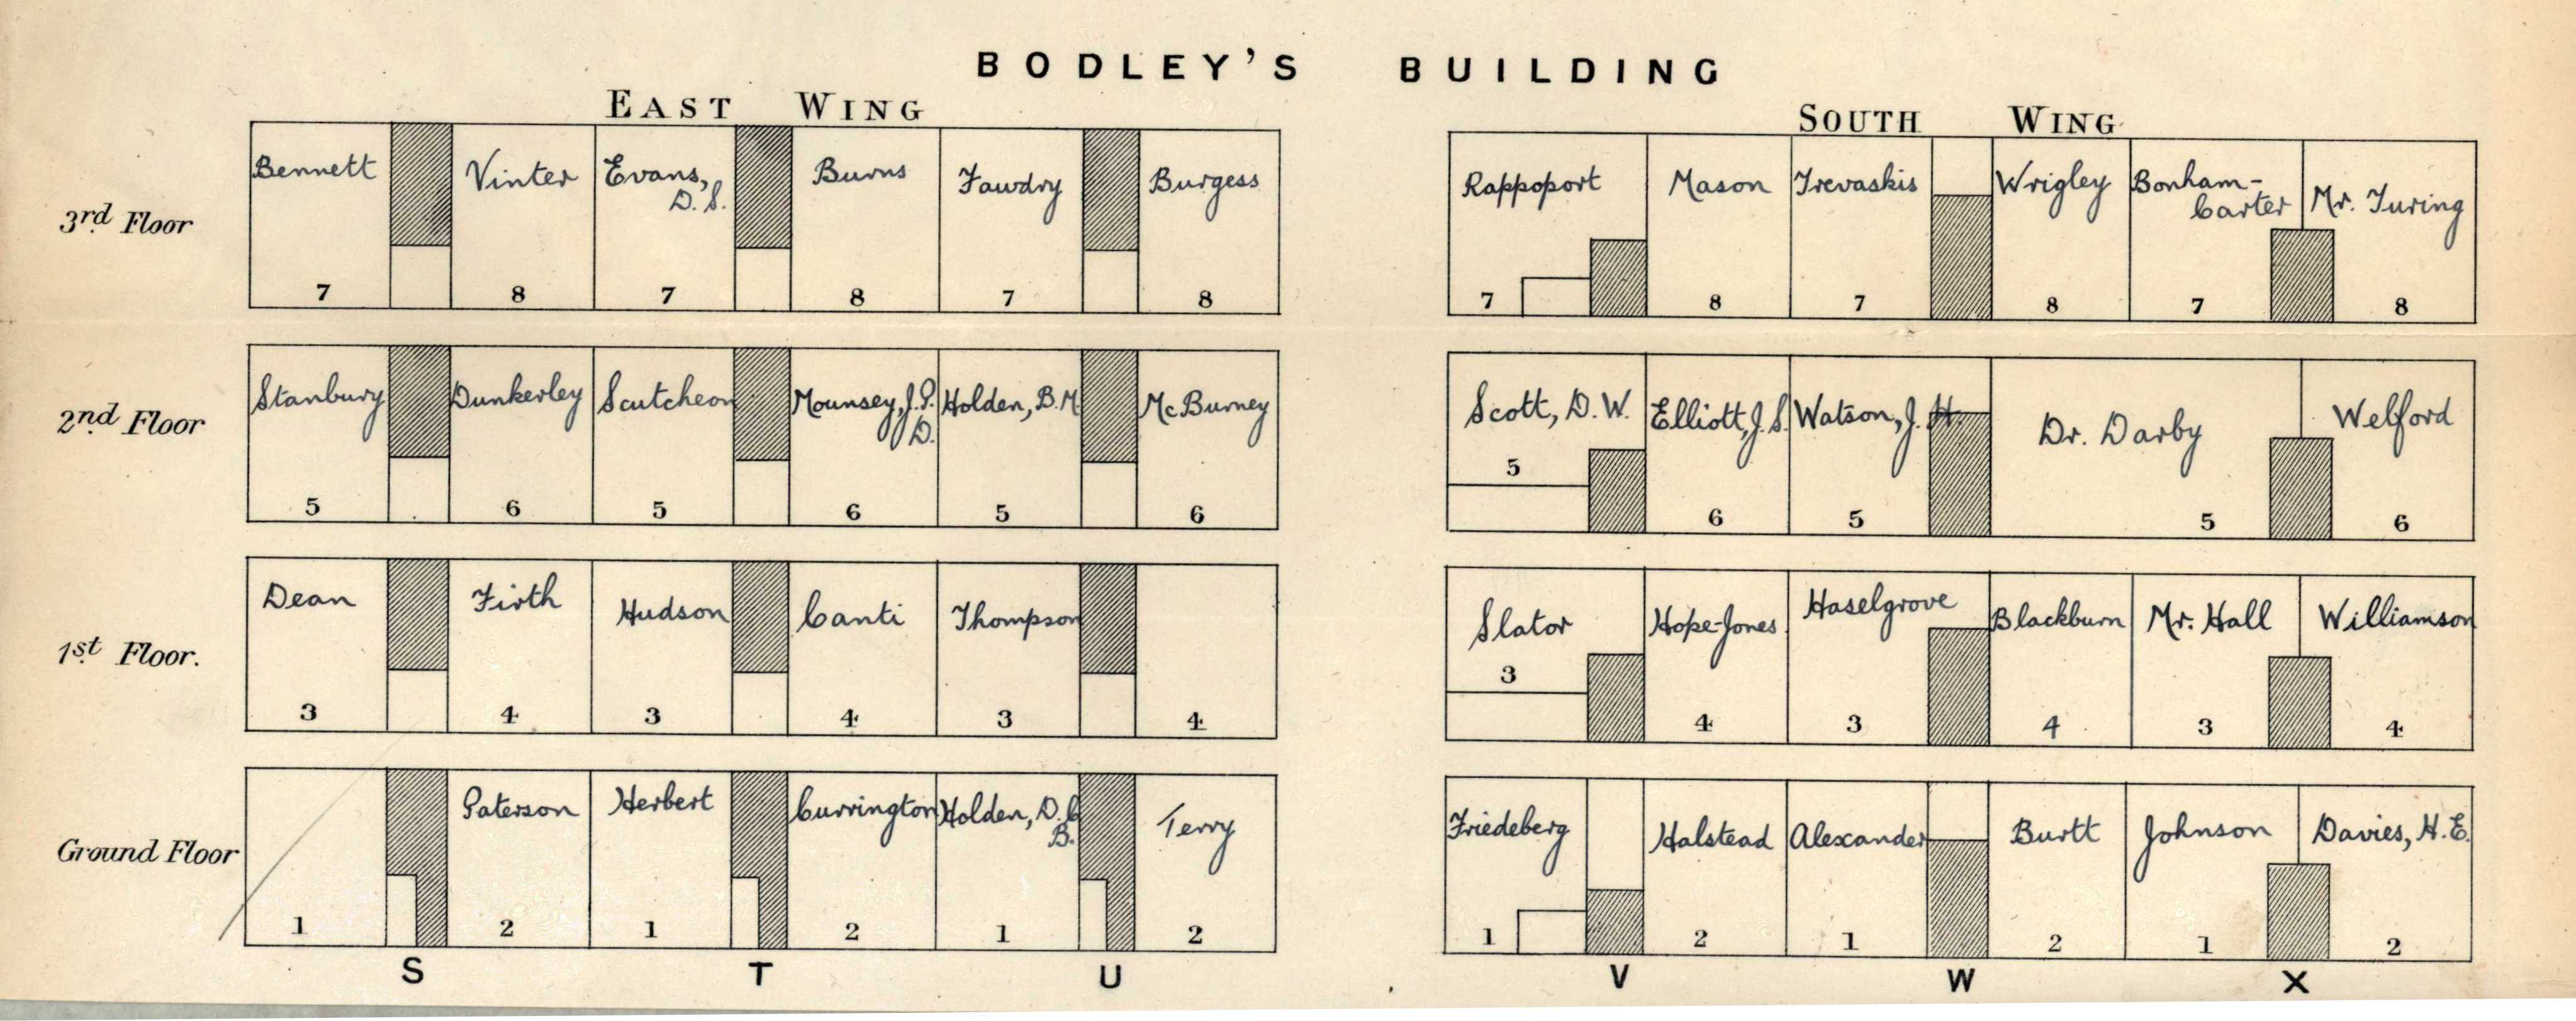 Turing's room upon being made Fellow was at the top of Bodley's building with a view up the river.  [KCAC/1/3/2/1]